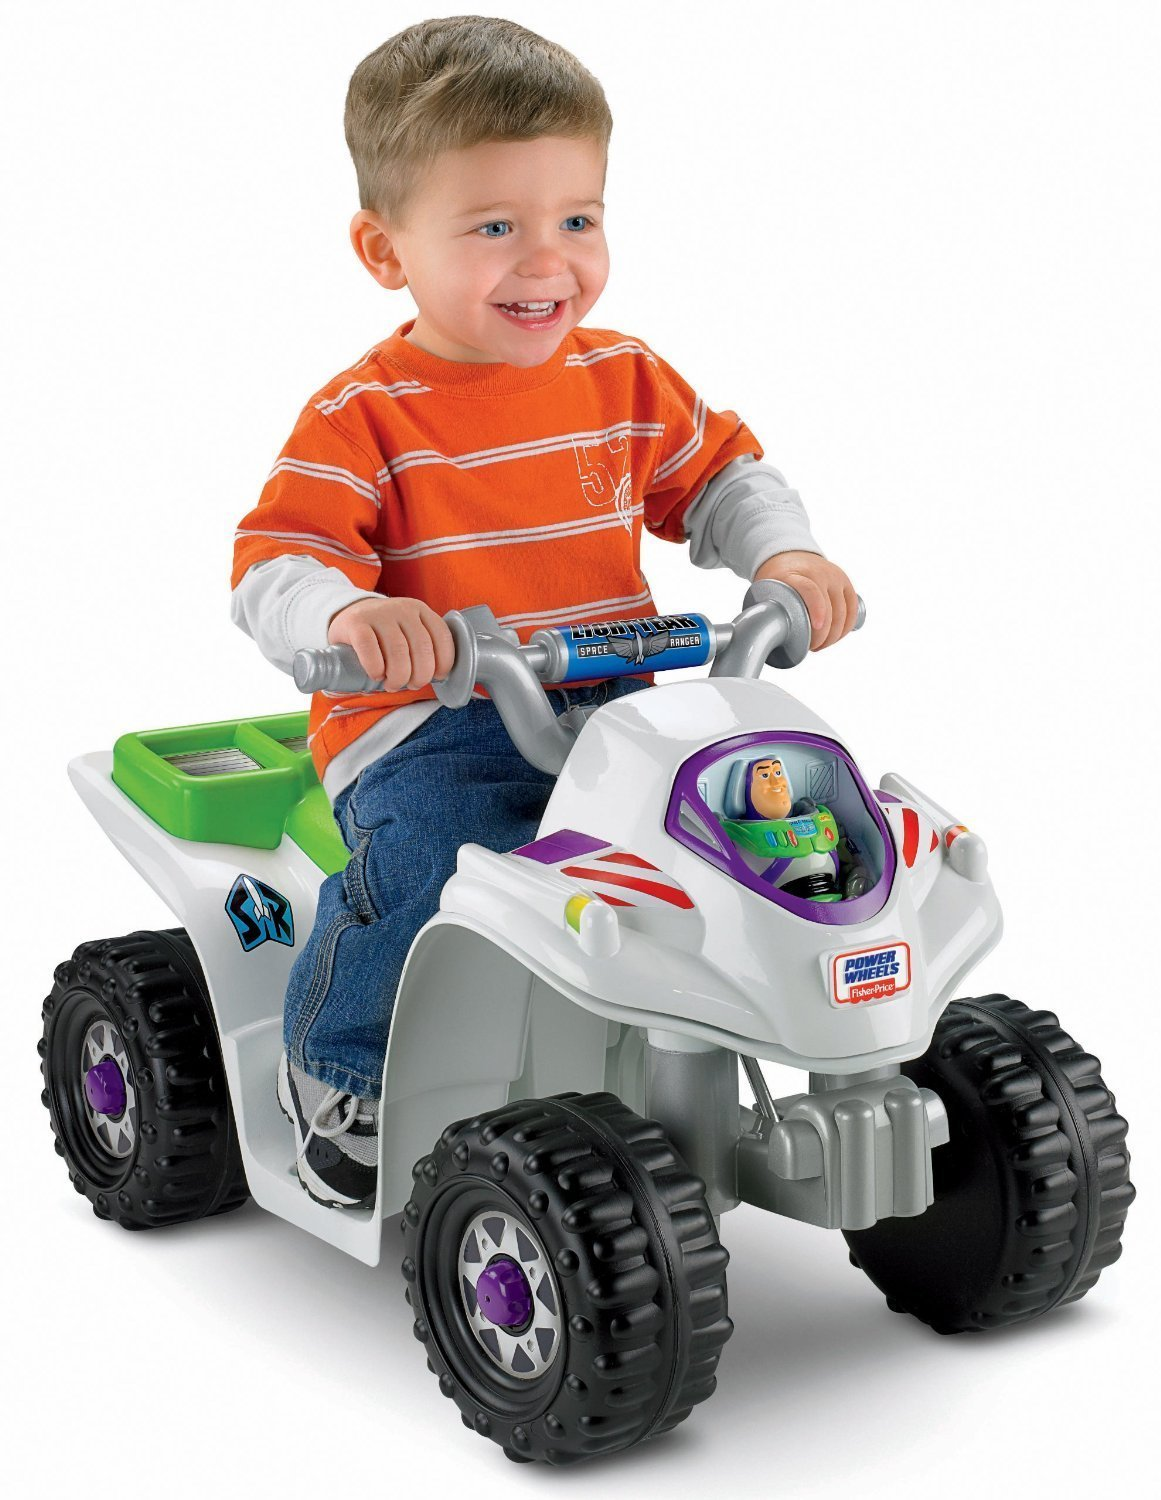 Buzz Lightyear ride-on toy - on sale for $58!